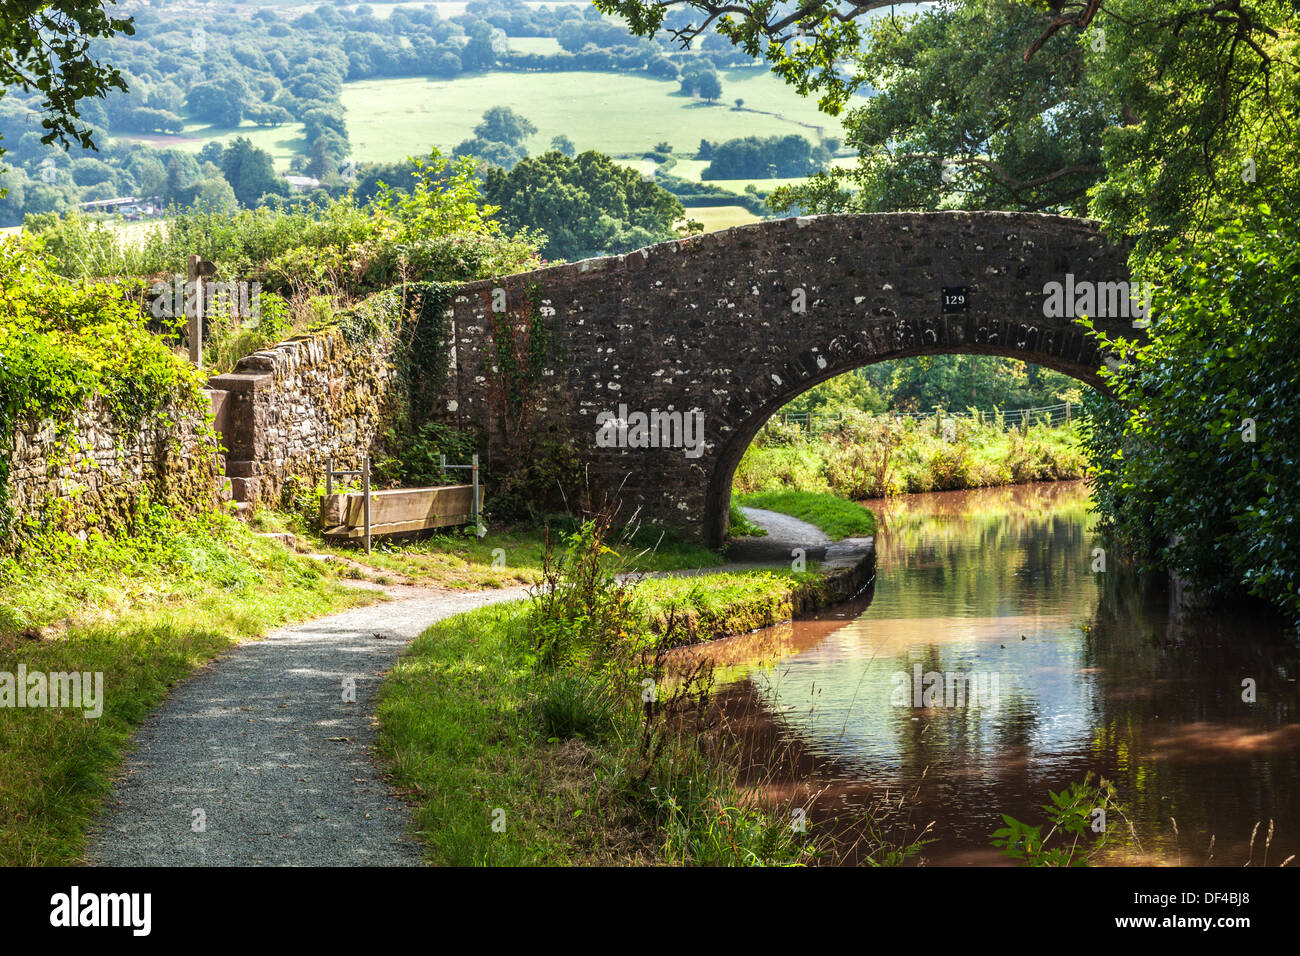 Stone bridge over the Monmouthshire and Brecon Canal at Llangynidr in the Brecon Beacons National Park. - Stock Image